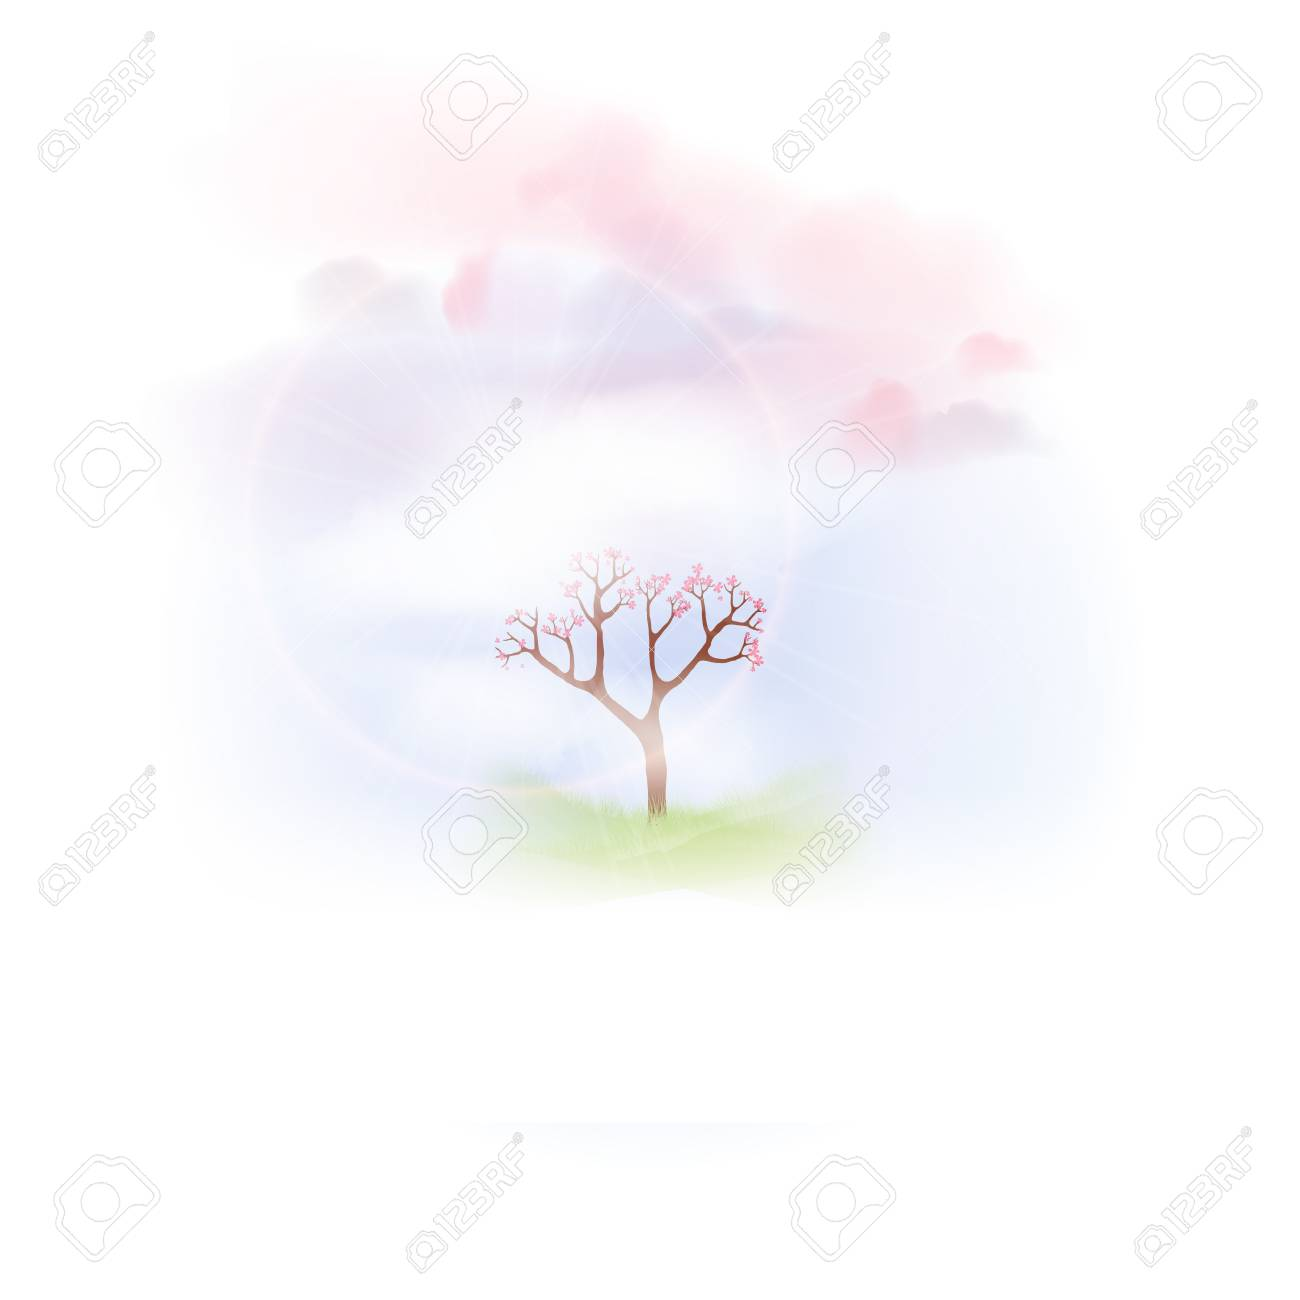 Spring with Lush Grass and Blooming Tree - Vector Illustration - 97525727